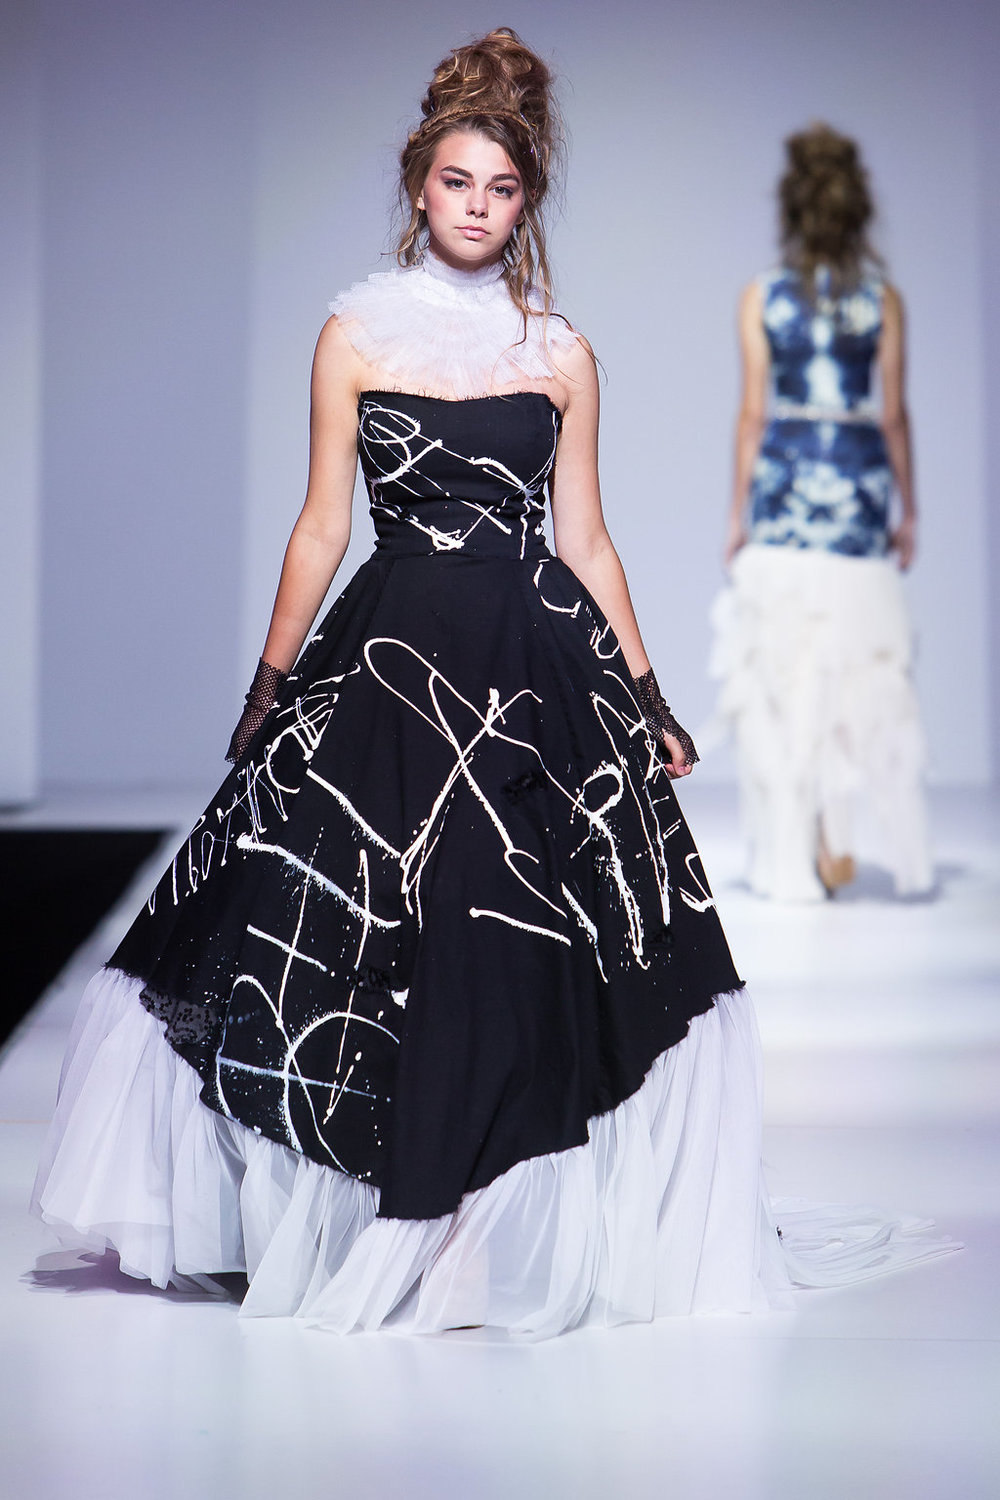 Black graffiti gown, handpainted, with a handmade hoop skirt